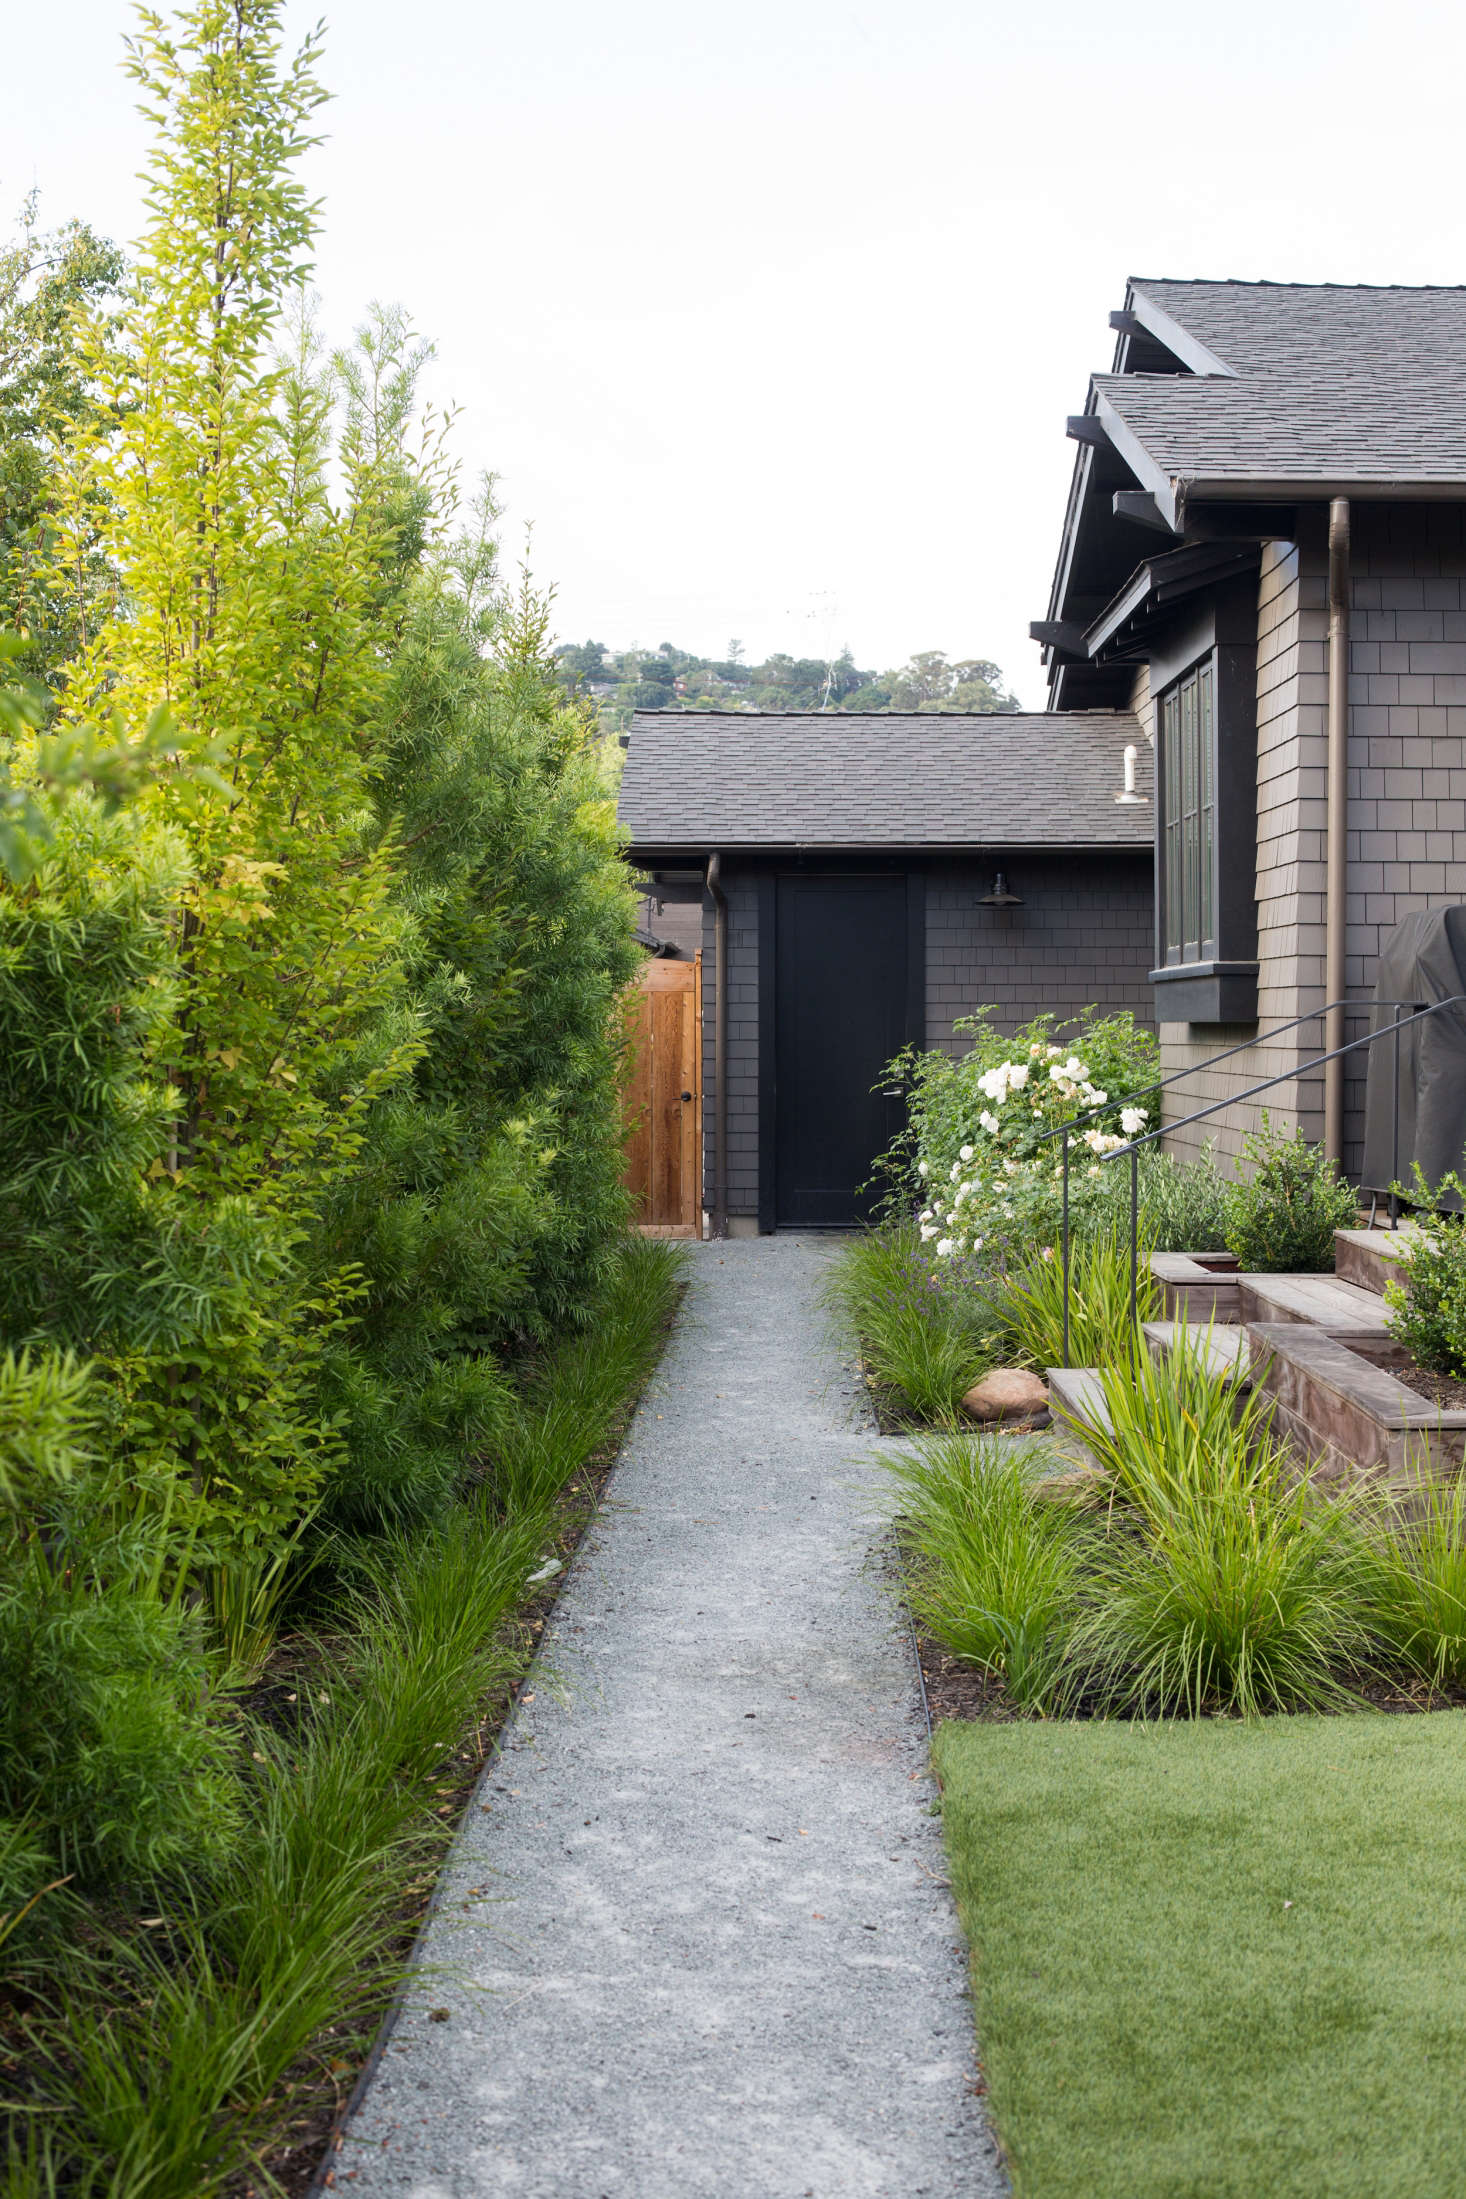 A decomposed granite (DG) path runs the length of the back garden and fast-growing fern pines (Podocarpus gracilior) create a privacy screen inside the back fence.